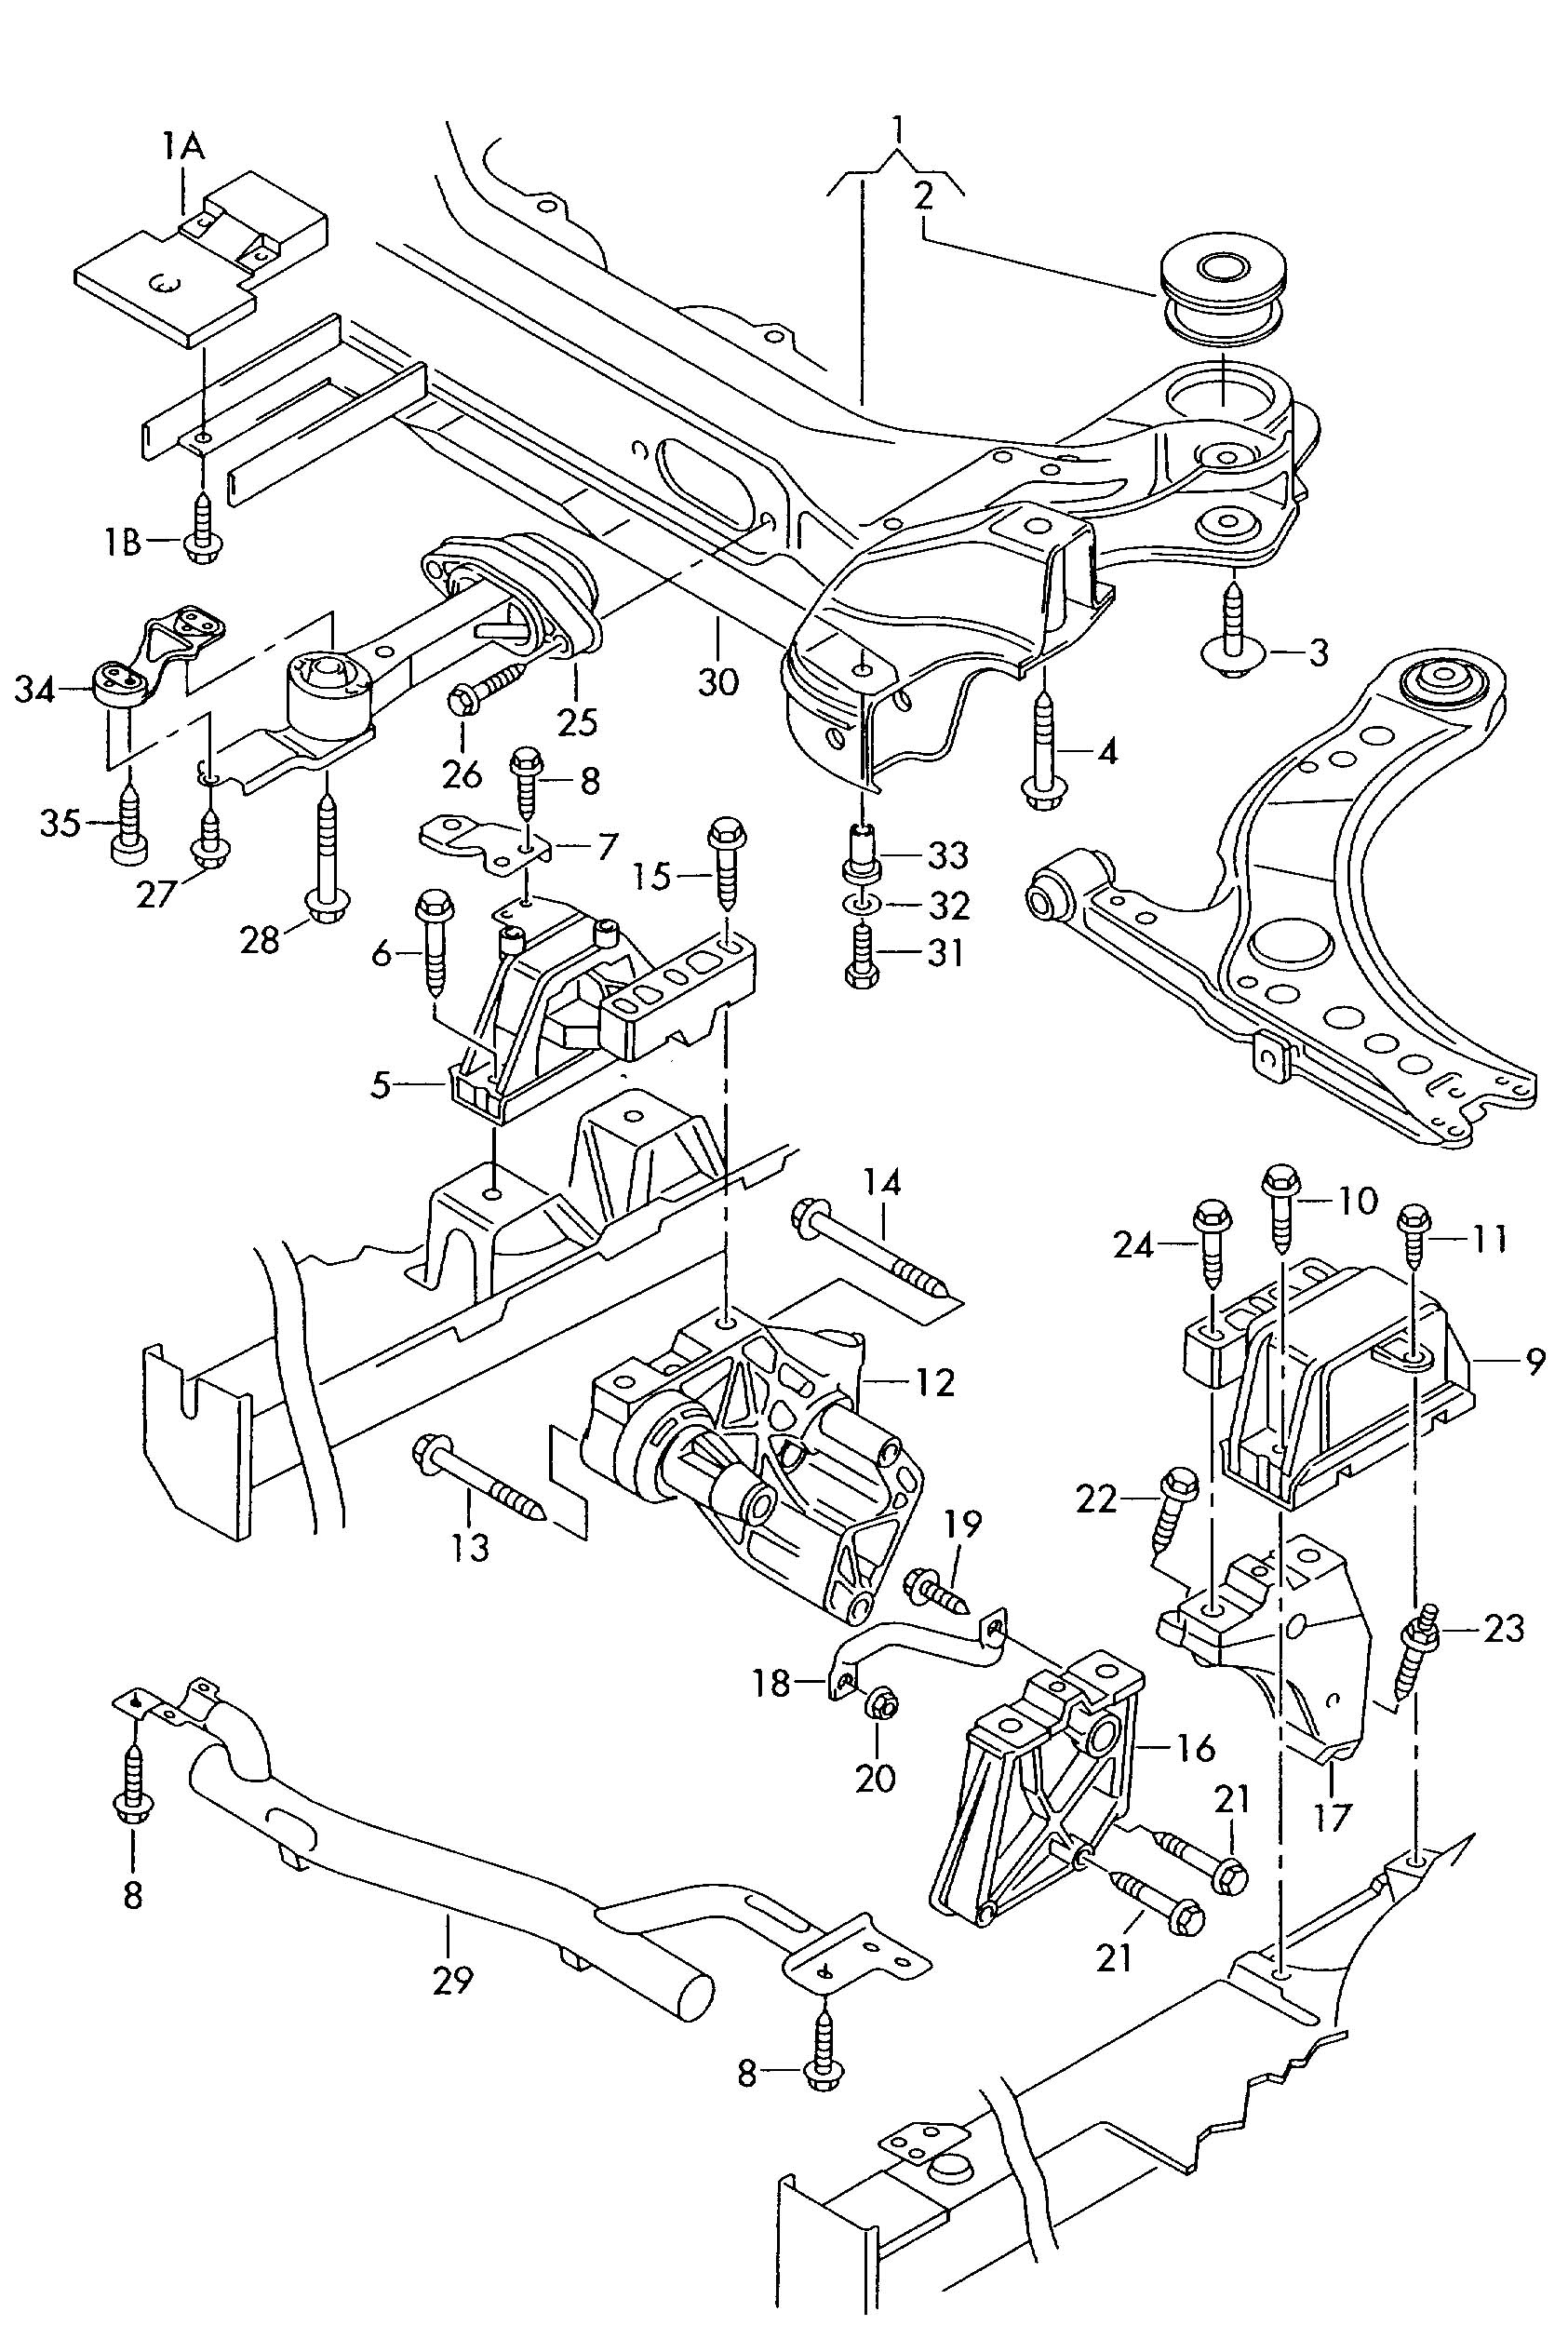 volkswagen golf wiring diagram volkswagen discover your wiring vw new beetle engine diagram